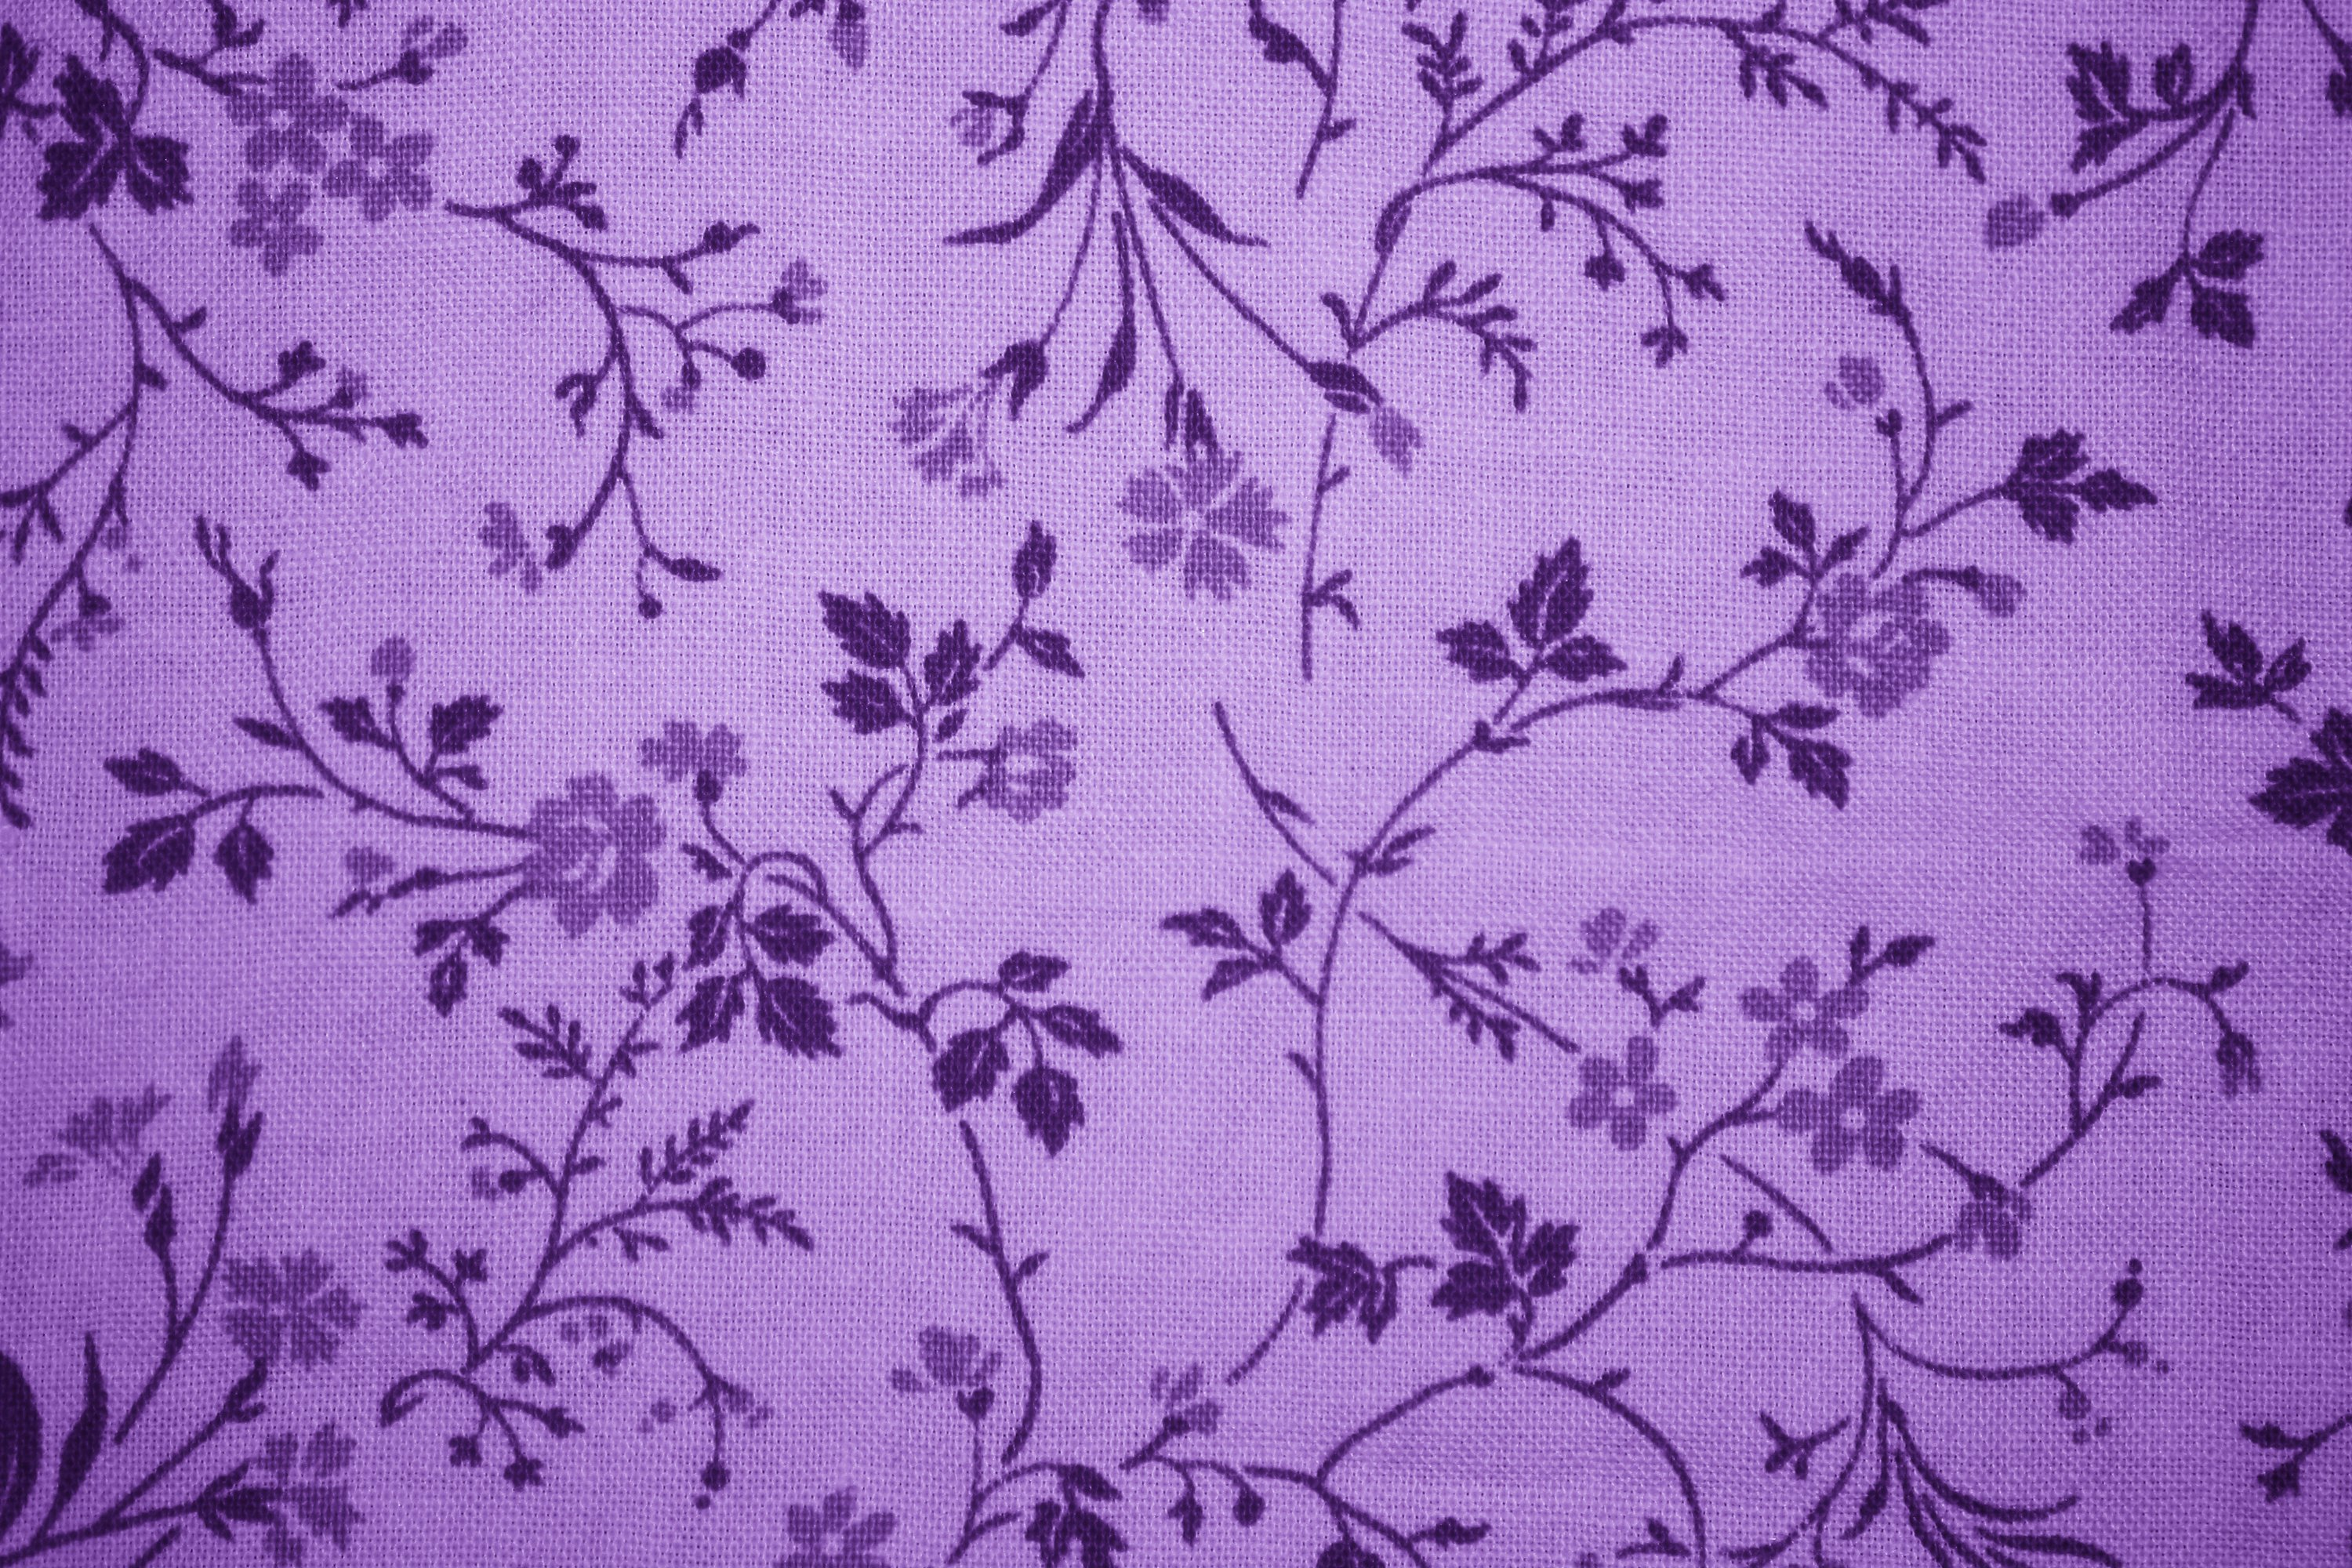 Purple Floral Print Fabric Texture - Free High Resolution Photo ...